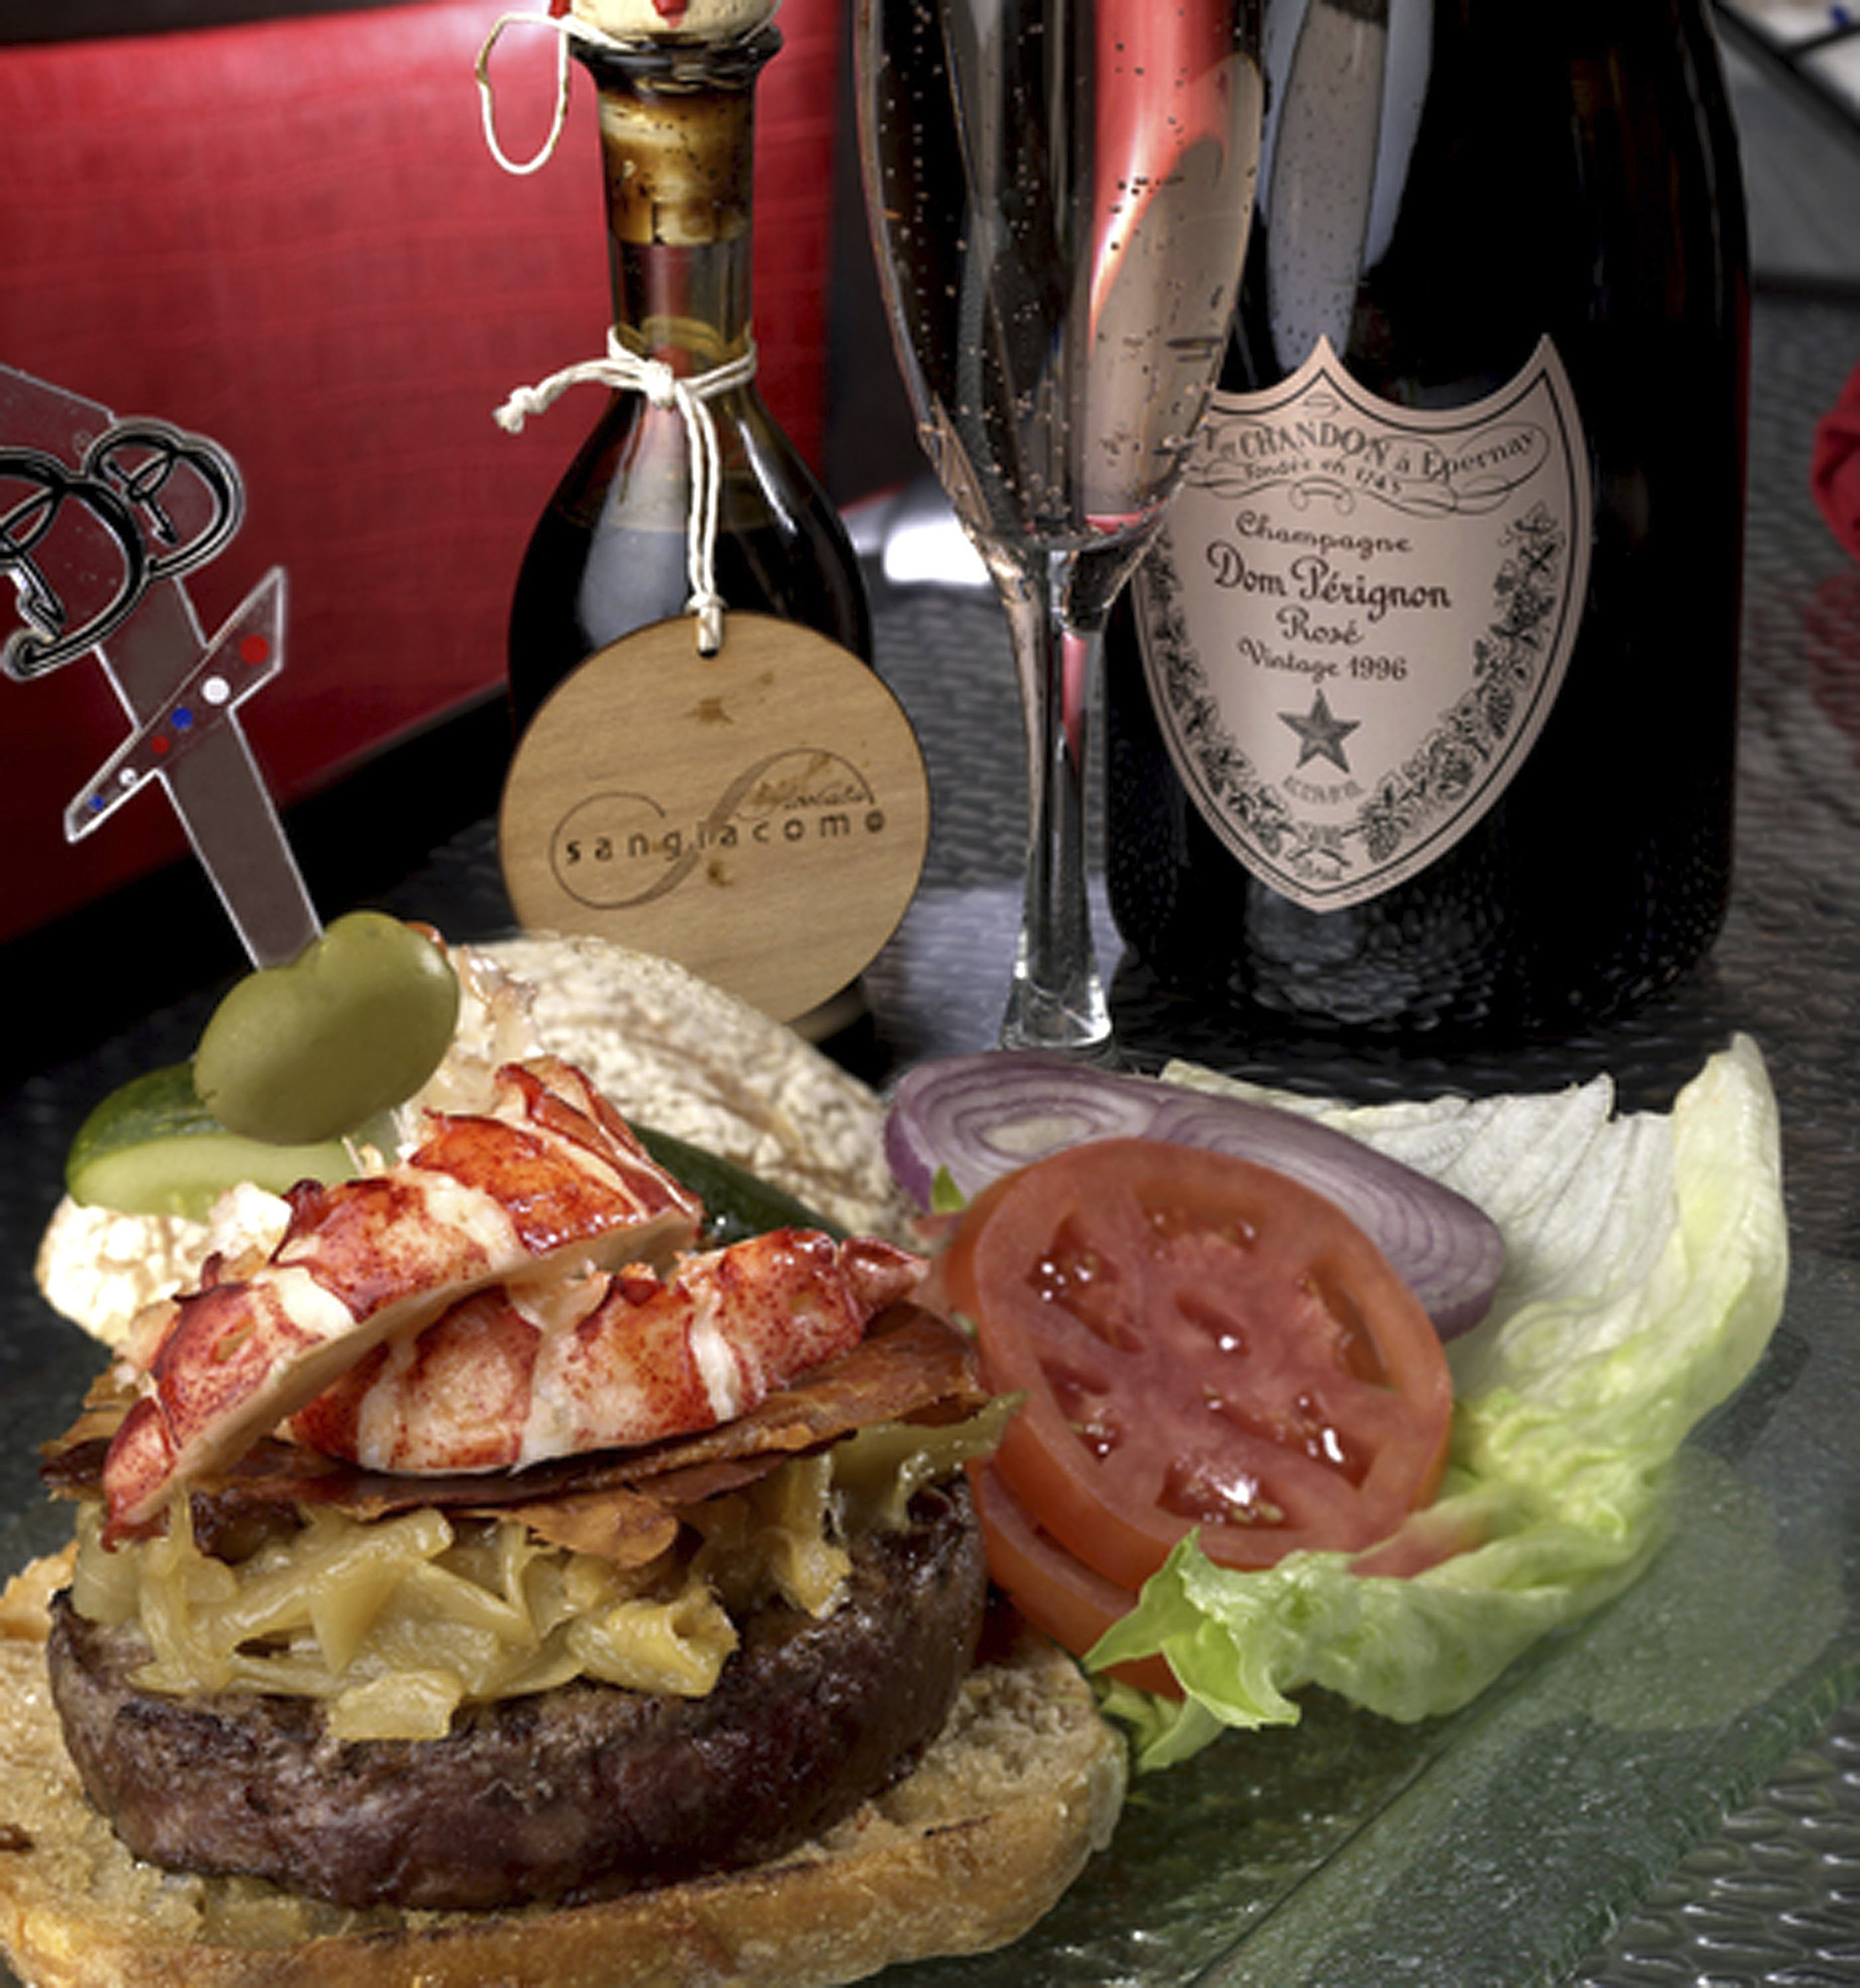 Brasserie in Paris Las Vegas, Nevada. . Consisting of Kobe Beef and fresh Maine Lobster, caramelized onions, imported brie cheese, prosciutto, 100 year aged balsamic vinegar - served with a bottle of Rose Dom Perignon champagne.